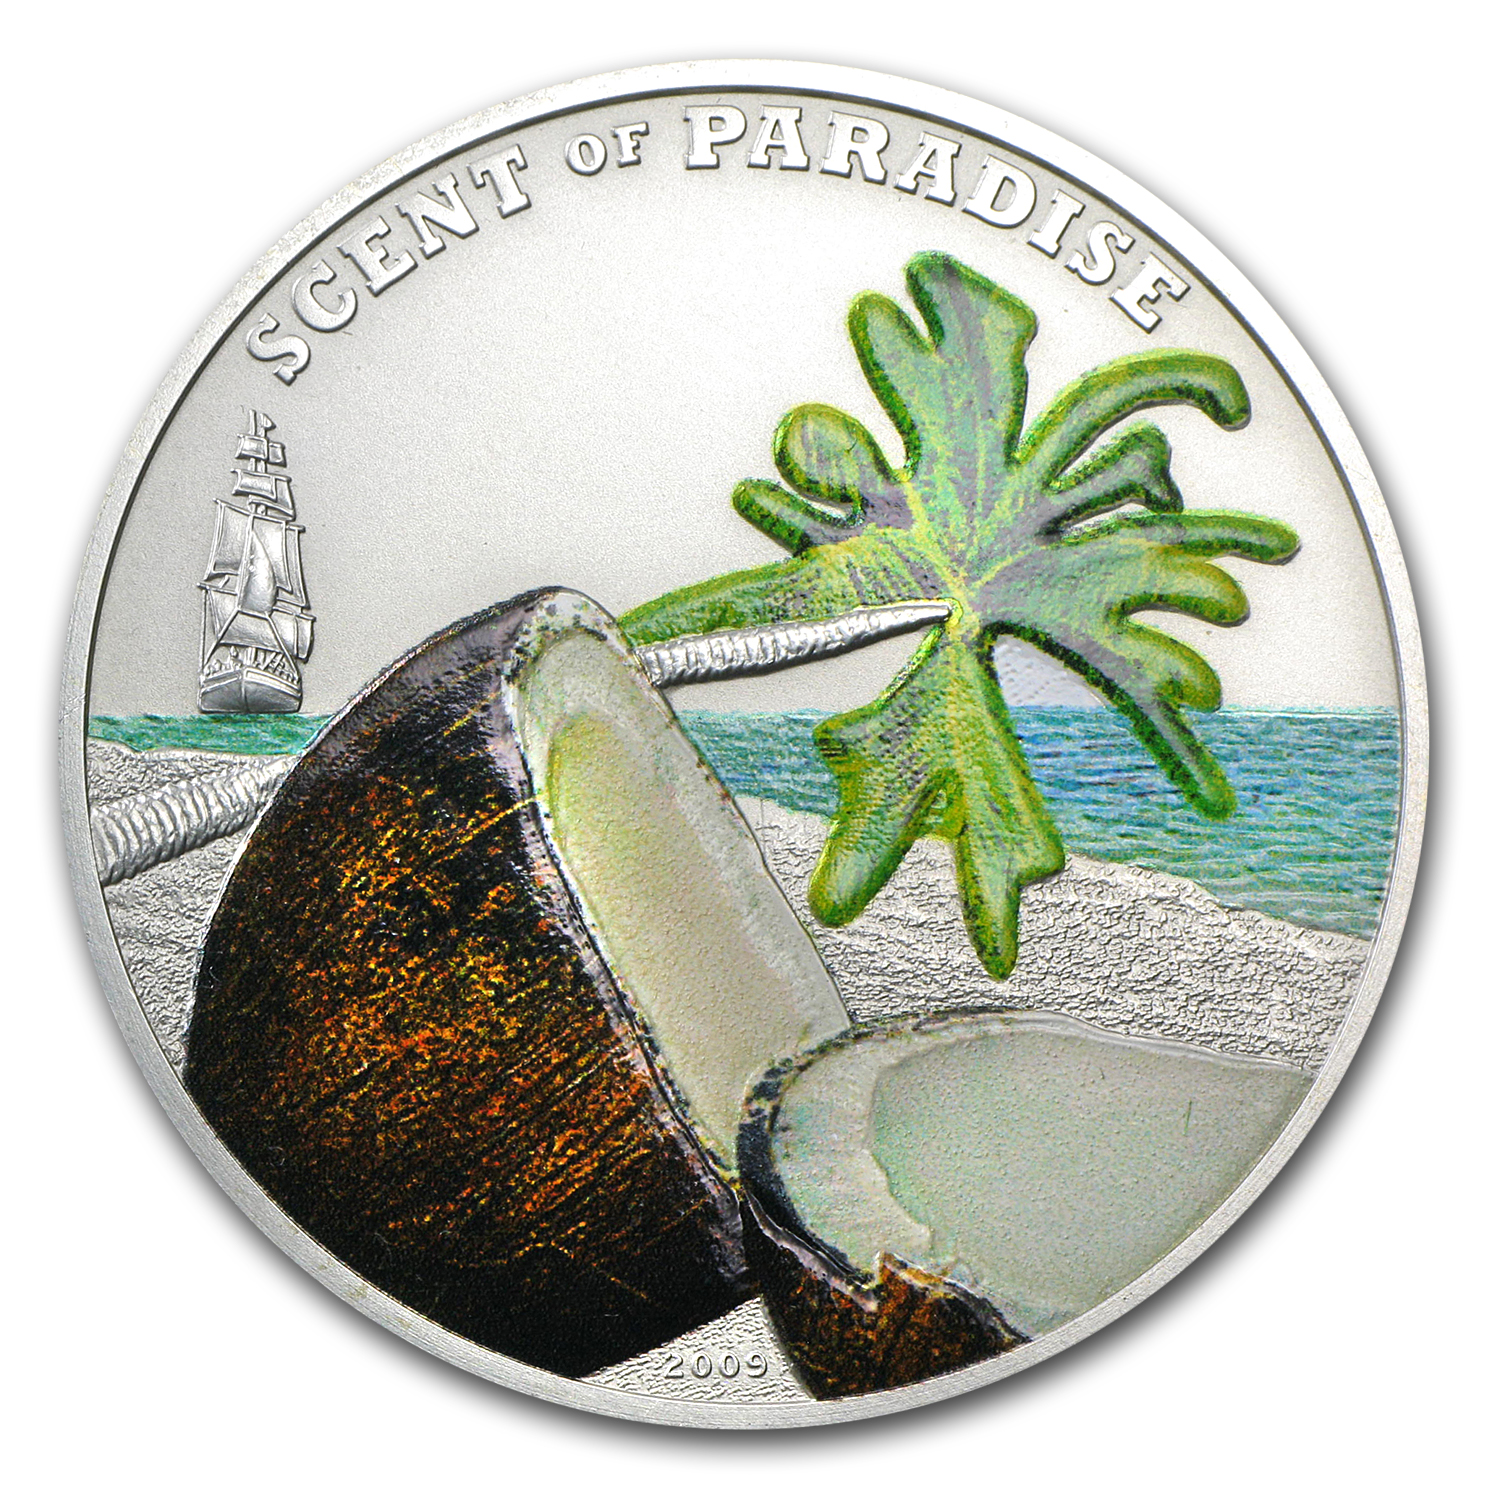 Palau 2009 Silver $5 Scent of Paradise - Coconut